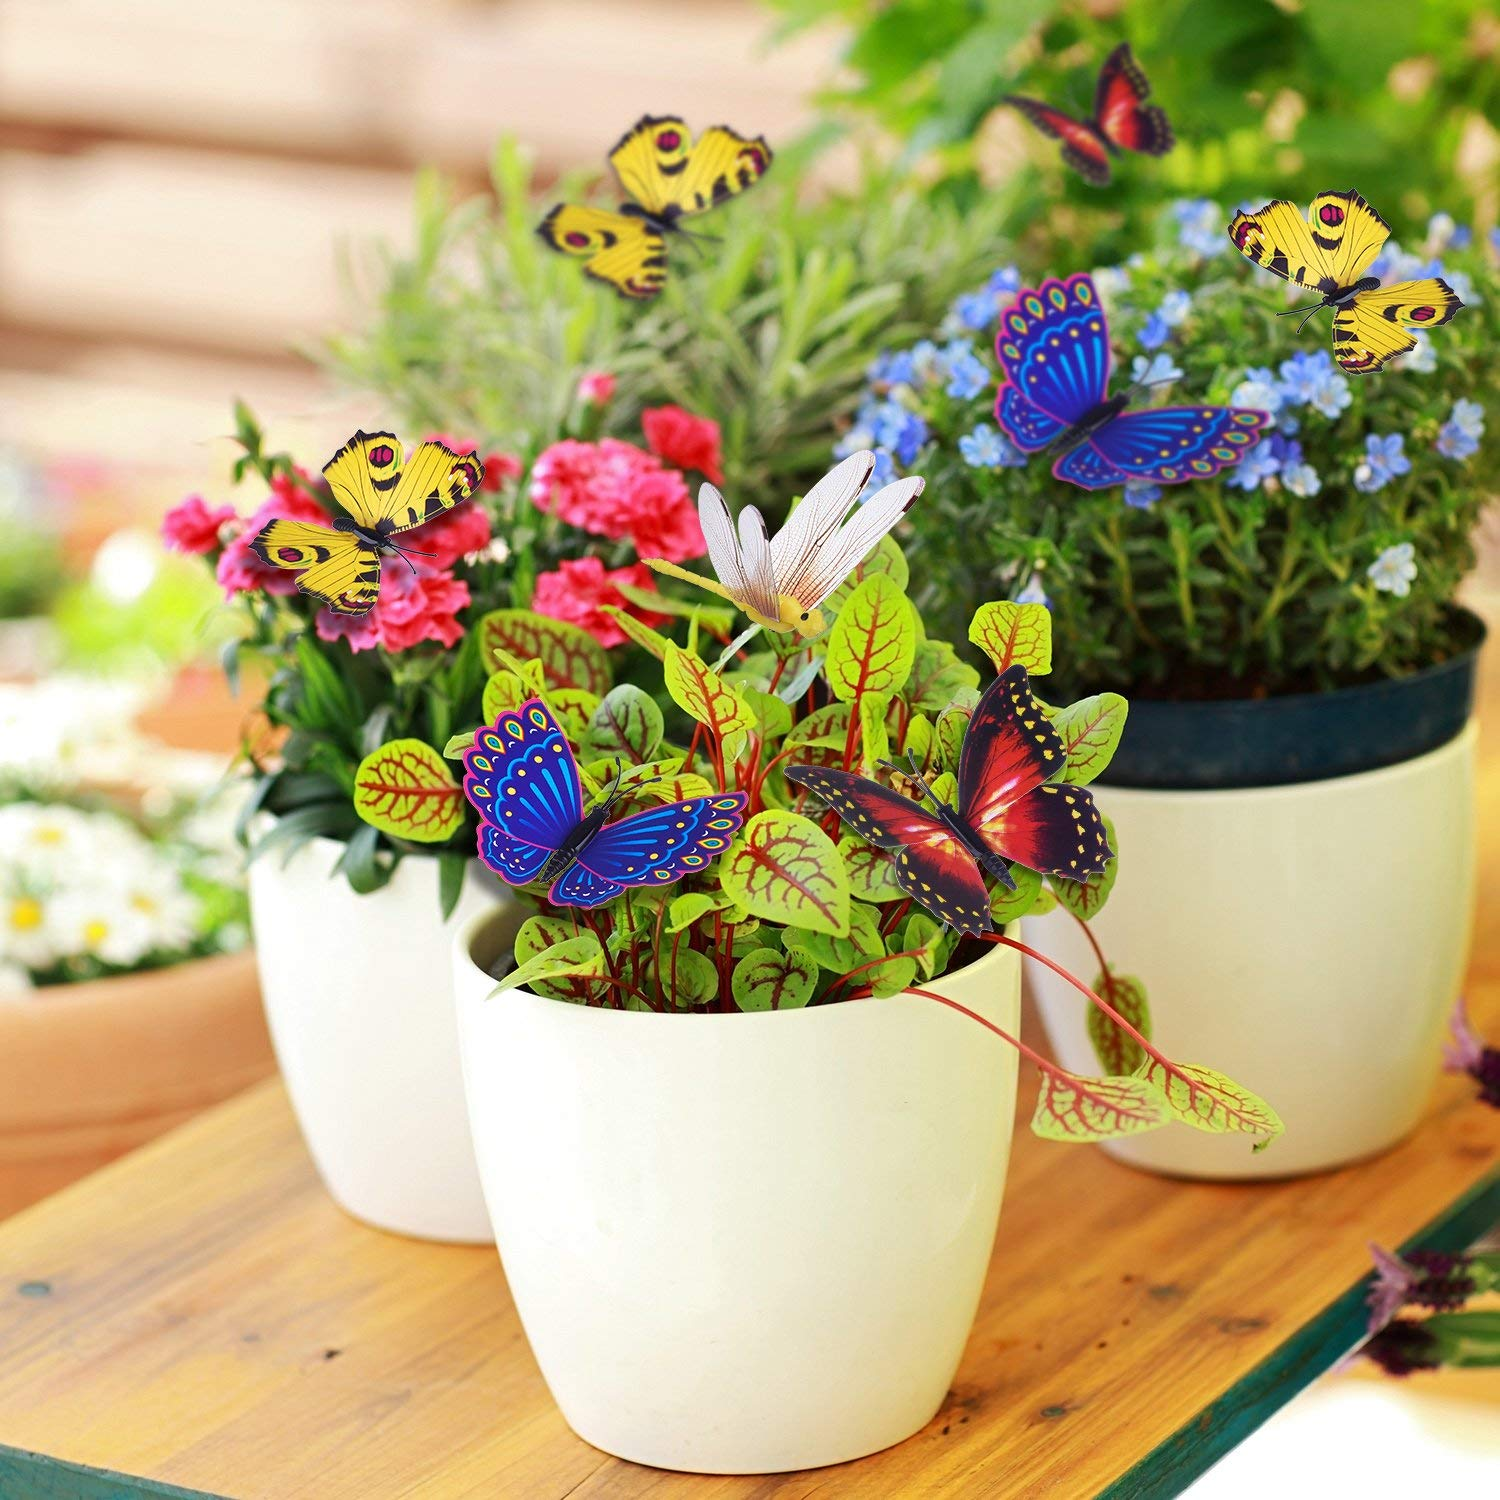 Home Decoration Flower Bed Patio Plant Pot 50PCS 27CM Garden Butterfly Ornaments MIKIROY Garden Butterfly Stakes Waterproof Butterfly Decorations for Indoor//Outdoor Yard